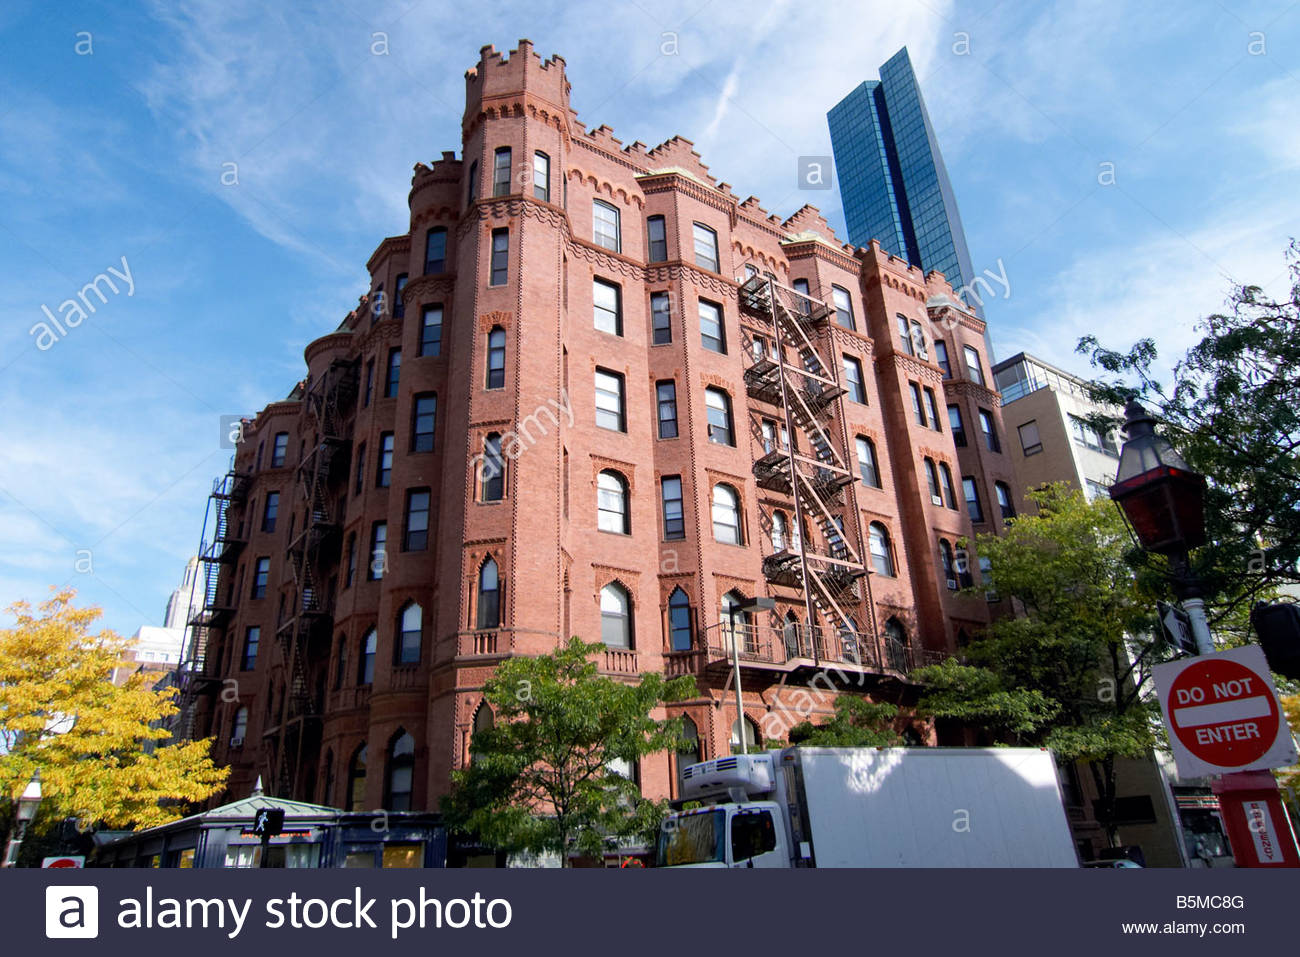 Red Brick Apartment Building On Stock Photos & Red Brick Apartment ...